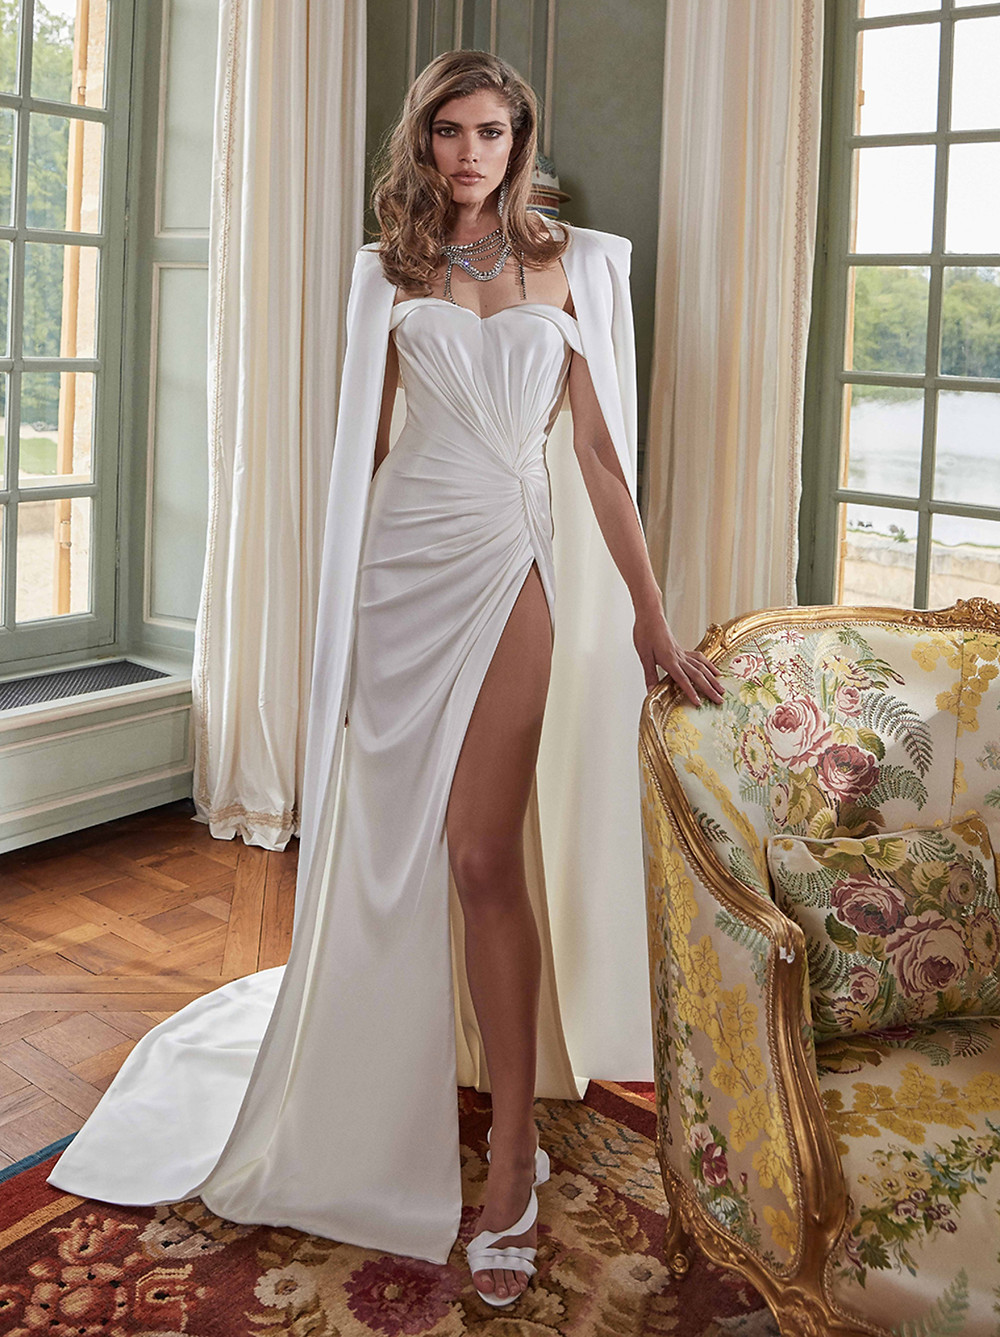 An elegant, silk satin, glass-like column wedding gown, expertly draped by hand. Features a thigh high slit and sexy off-the-shoulder straps